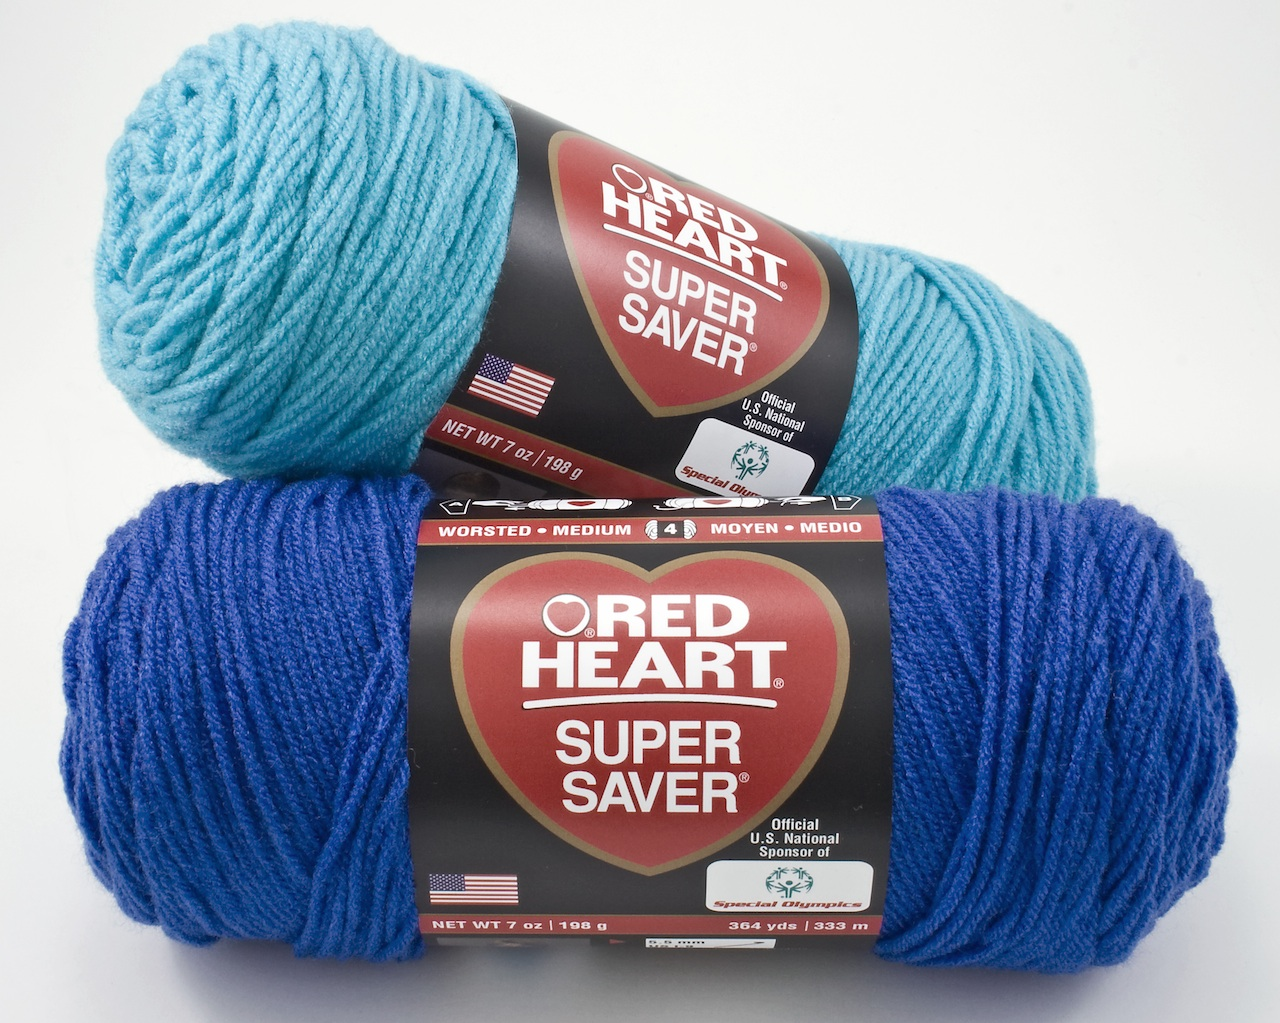 Special Olympics Joins With Red Heart Yarns to Inspire Handmade Unity